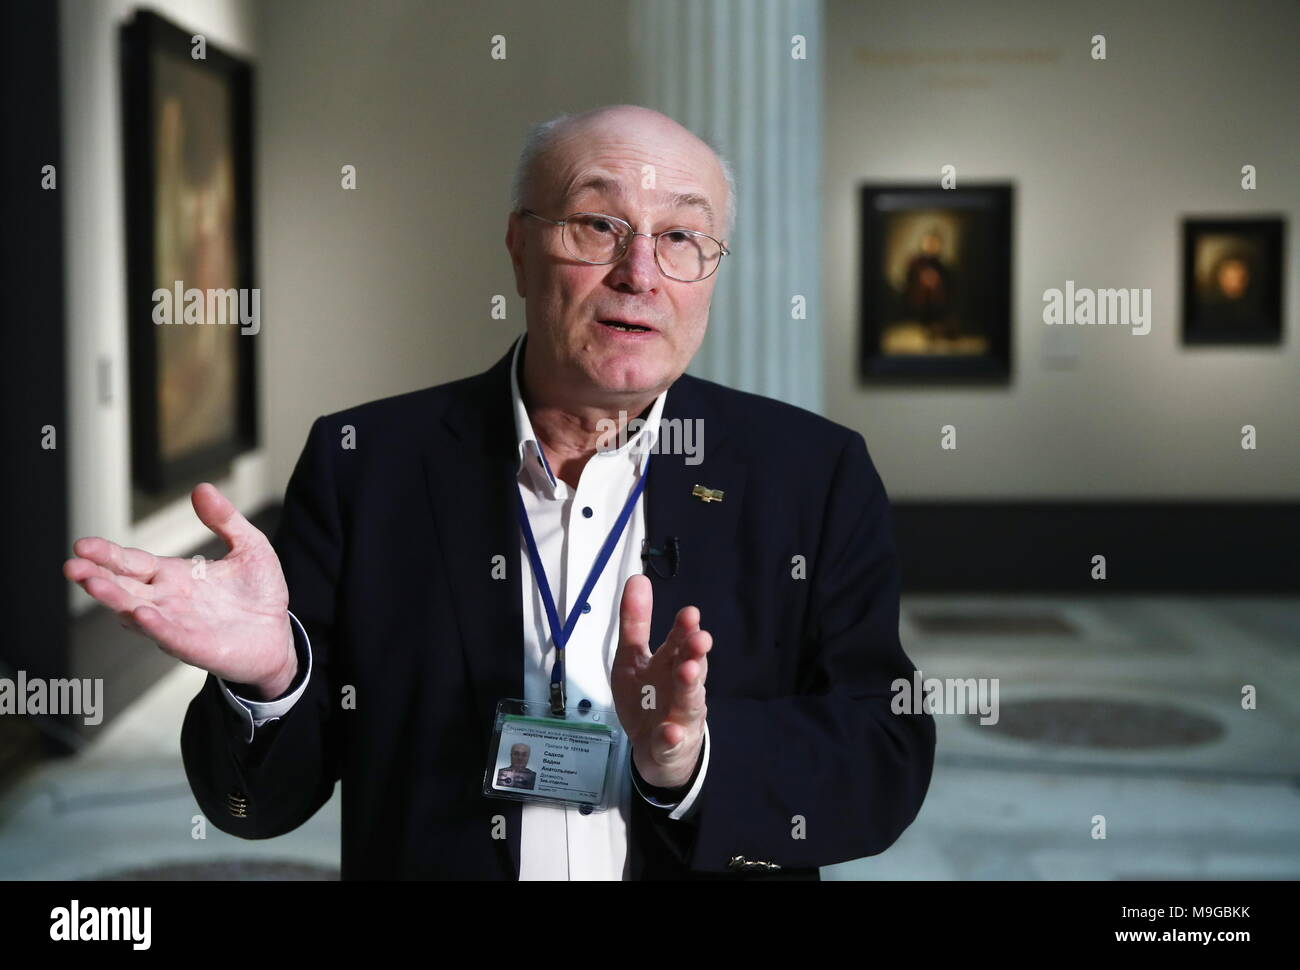 "Moscow, Russia. 26th Mar, 2018. MOSCOW, RUSSIA - MARCH 26, 2018: Vadim Sadkov, curator of an exhibition titled ""The age of Rembrandt and Vermeer. Masterpieces of the Leiden Collection"", at the Pushkin State Museum of Fine Arts. Valery Sharifulin/TASS Credit: ITAR-TASS News Agency/Alamy Live News Stock Photo"